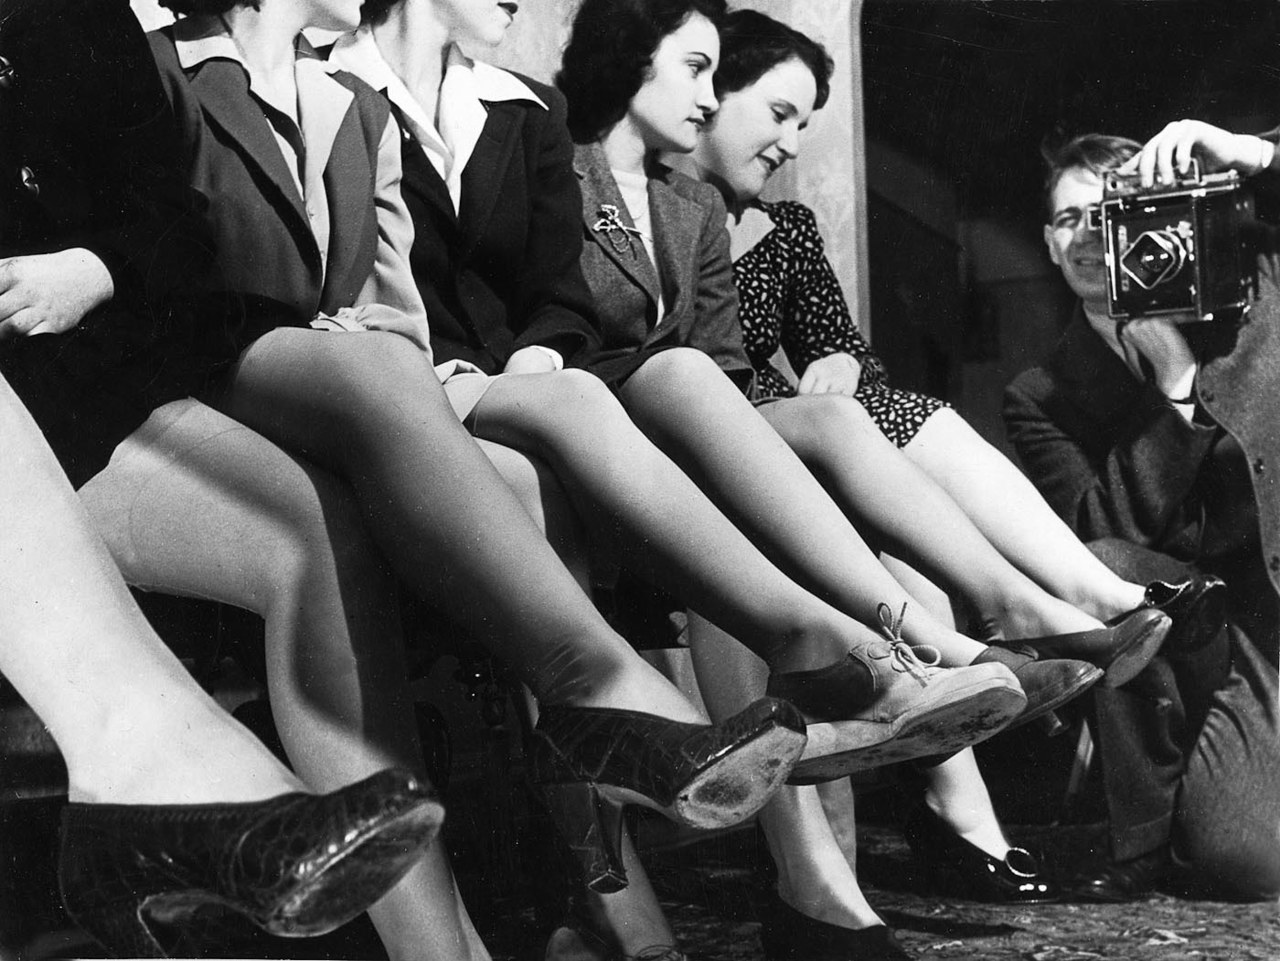 newspaper photographer with women showing nylon stockings, 1942